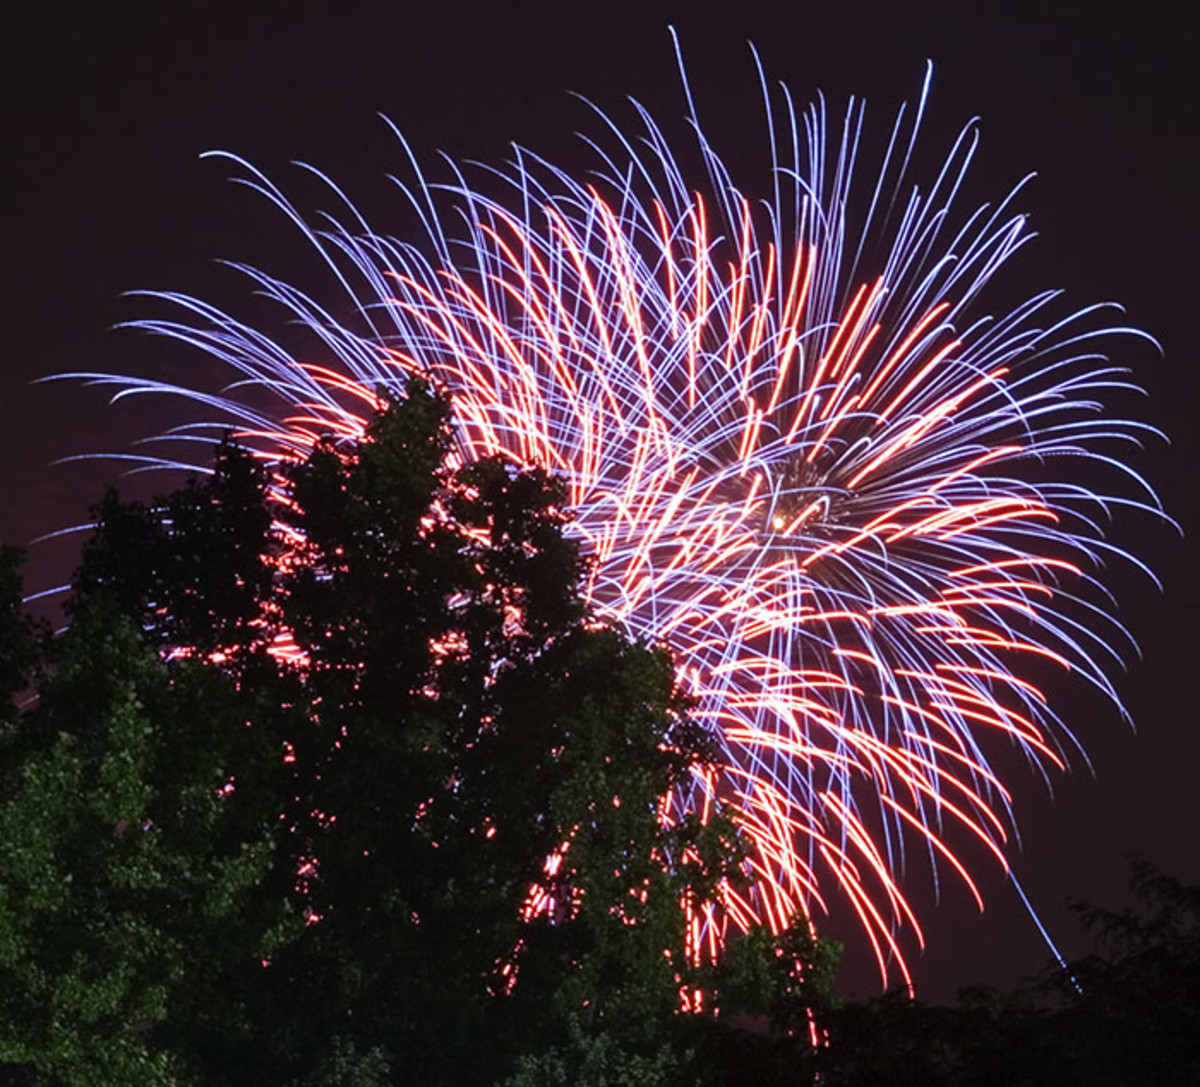 Fireworks over the trees